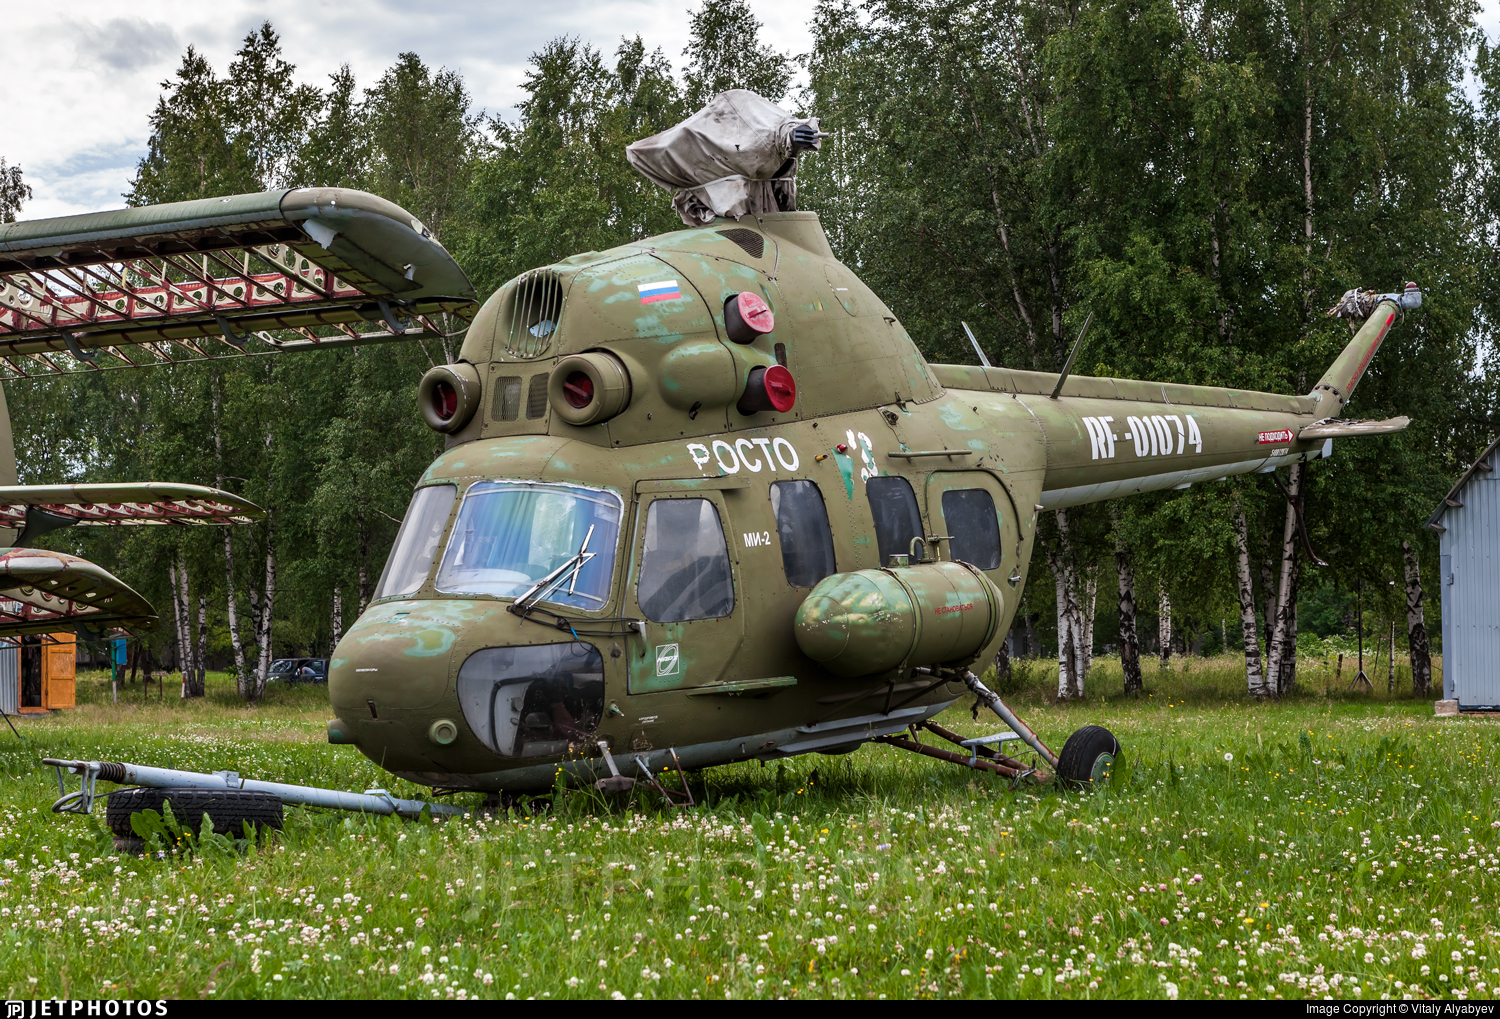 RF-01074 - PZL-Swidnik Mi-2 Bazant - Russia - Voluntary Society for Assistance to the Army, Air Force and Navy (DOSAAF)